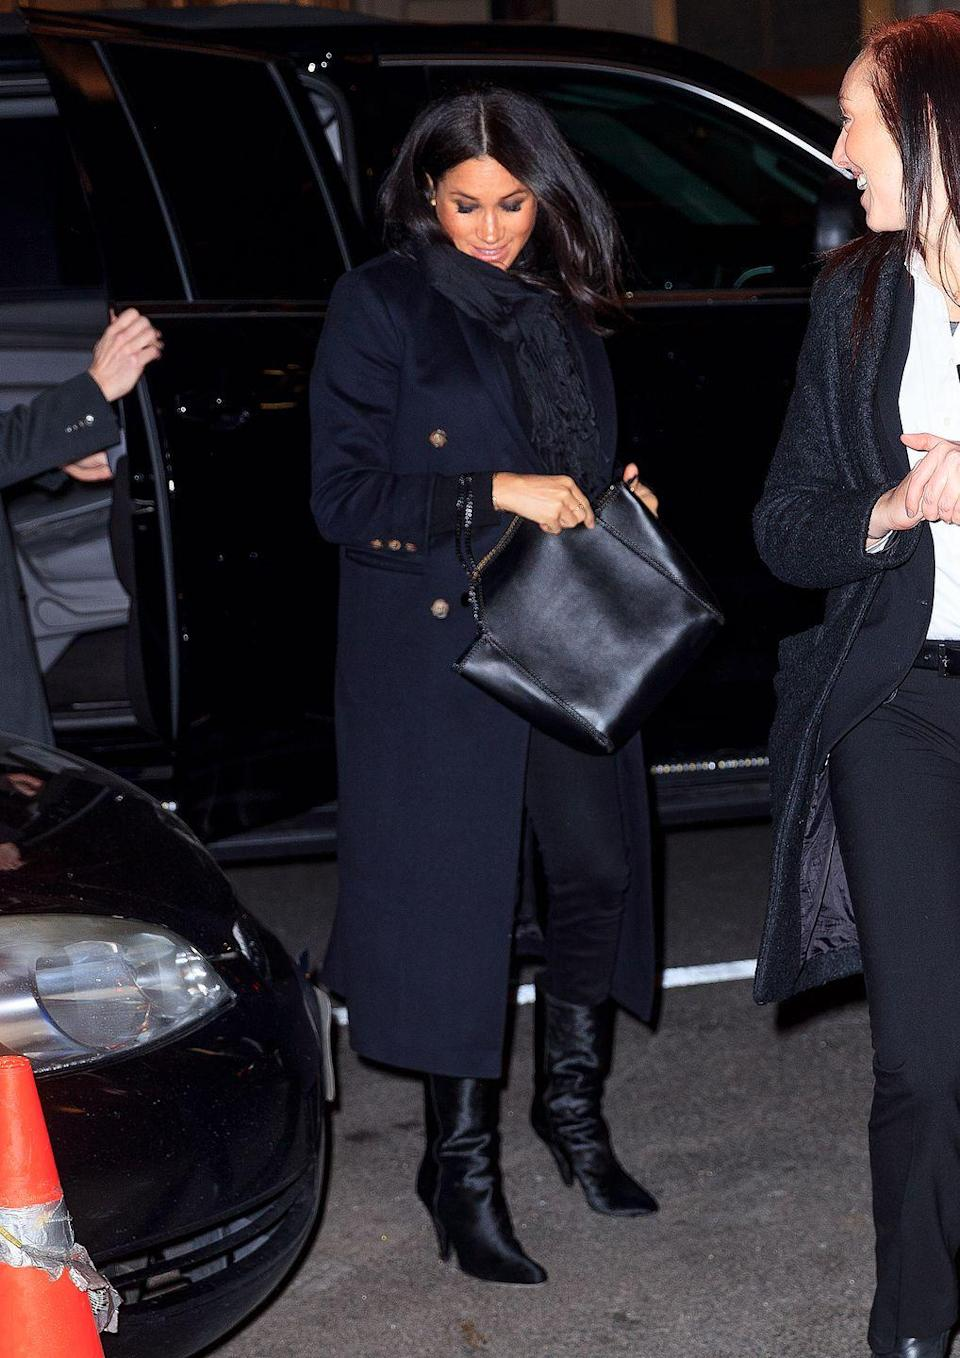 """<p>Meghan re-wore the navy Victoria Beckham coat <a href=""""https://www.townandcountrymag.com/style/fashion-trends/a25632850/meghan-markle-navy-blue-coat-dress-hat-christmas-day-2018-photos/"""" rel=""""nofollow noopener"""" target=""""_blank"""" data-ylk=""""slk:she styled on Christmas Day"""" class=""""link rapid-noclick-resp"""">she styled on Christmas Day</a> for a <a href=""""https://www.townandcountrymag.com/style/fashion-trends/a26425380/meghan-markle-victoria-beckham-coat-polo-bar-new-york-photos/"""" rel=""""nofollow noopener"""" target=""""_blank"""" data-ylk=""""slk:dinner with friends at the Polo Bar."""" class=""""link rapid-noclick-resp"""">dinner with friends at the Polo Bar.</a> The duchess styled the coat with black Hatch jeans, haircalf boots by <a href=""""https://go.redirectingat.com?id=74968X1596630&url=https%3A%2F%2Fwww.tamaramellon.com%2Fproducts%2Fkindred-low-105-haircalf&sref=https%3A%2F%2Fwww.townandcountrymag.com%2Fstyle%2Ffashion-trends%2Fg3272%2Fmeghan-markle-preppy-style%2F"""" rel=""""nofollow noopener"""" target=""""_blank"""" data-ylk=""""slk:Tamara Mellon"""" class=""""link rapid-noclick-resp"""">Tamara Mellon</a>, and a Stella McCartney bag. </p><p><a class=""""link rapid-noclick-resp"""" href=""""https://go.redirectingat.com?id=74968X1596630&url=https%3A%2F%2Fwww.tamaramellon.com%2Fproducts%2Fkindred-low-105-haircalf&sref=https%3A%2F%2Fwww.townandcountrymag.com%2Fstyle%2Ffashion-trends%2Fg3272%2Fmeghan-markle-preppy-style%2F"""" rel=""""nofollow noopener"""" target=""""_blank"""" data-ylk=""""slk:Shop Now"""">Shop Now</a> <em>Kindred mid-calf boots, Tamara Mellon, $695</em></p>"""